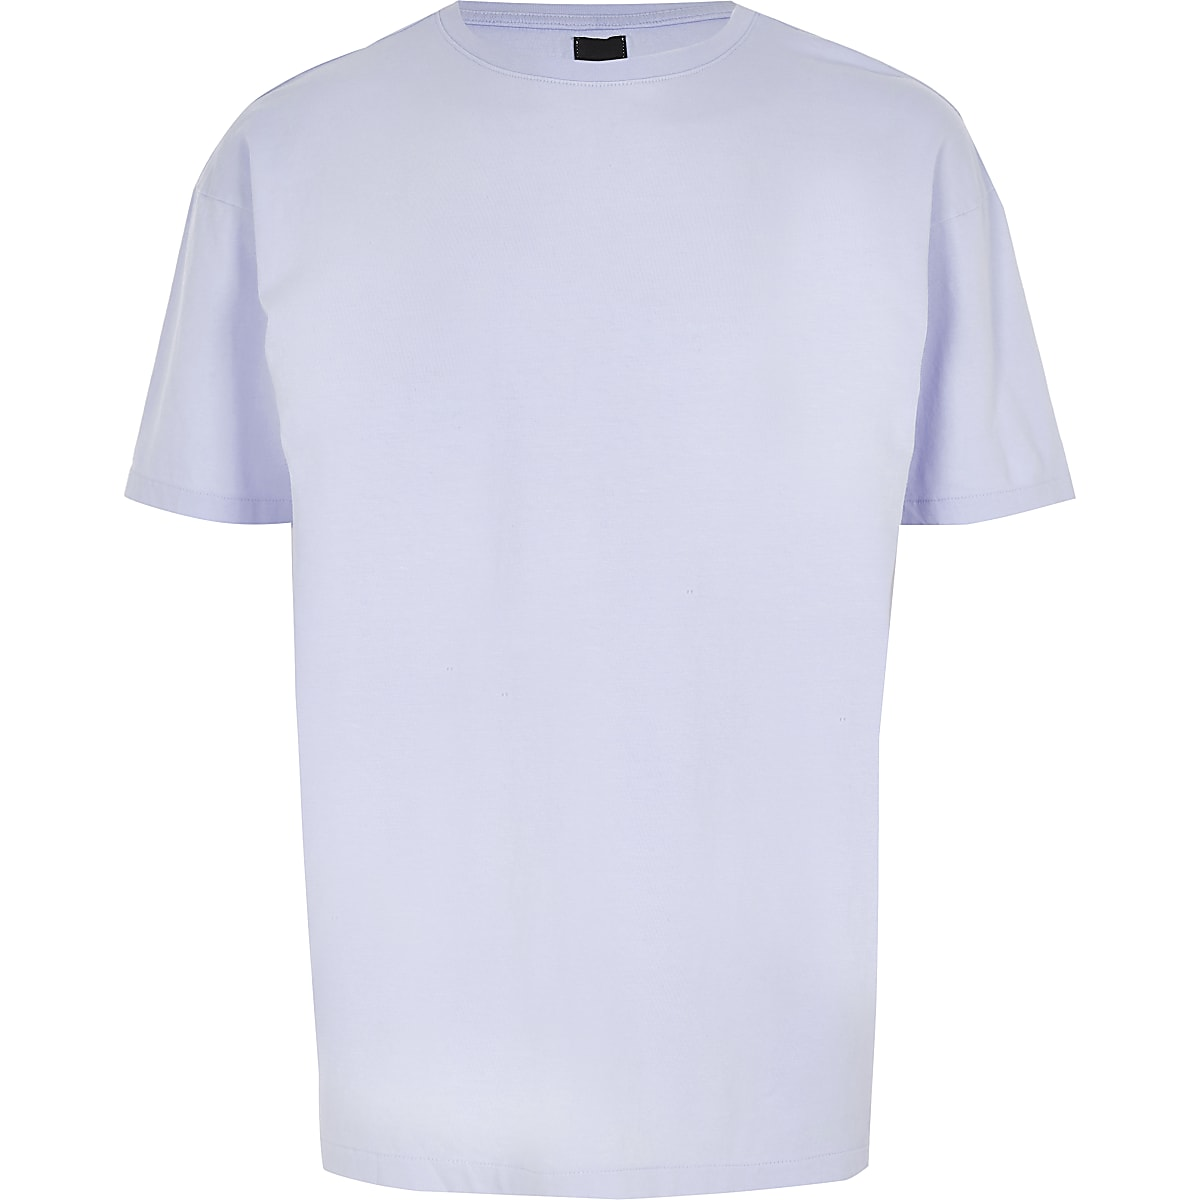 Light purple oversized short sleeve T-shirt